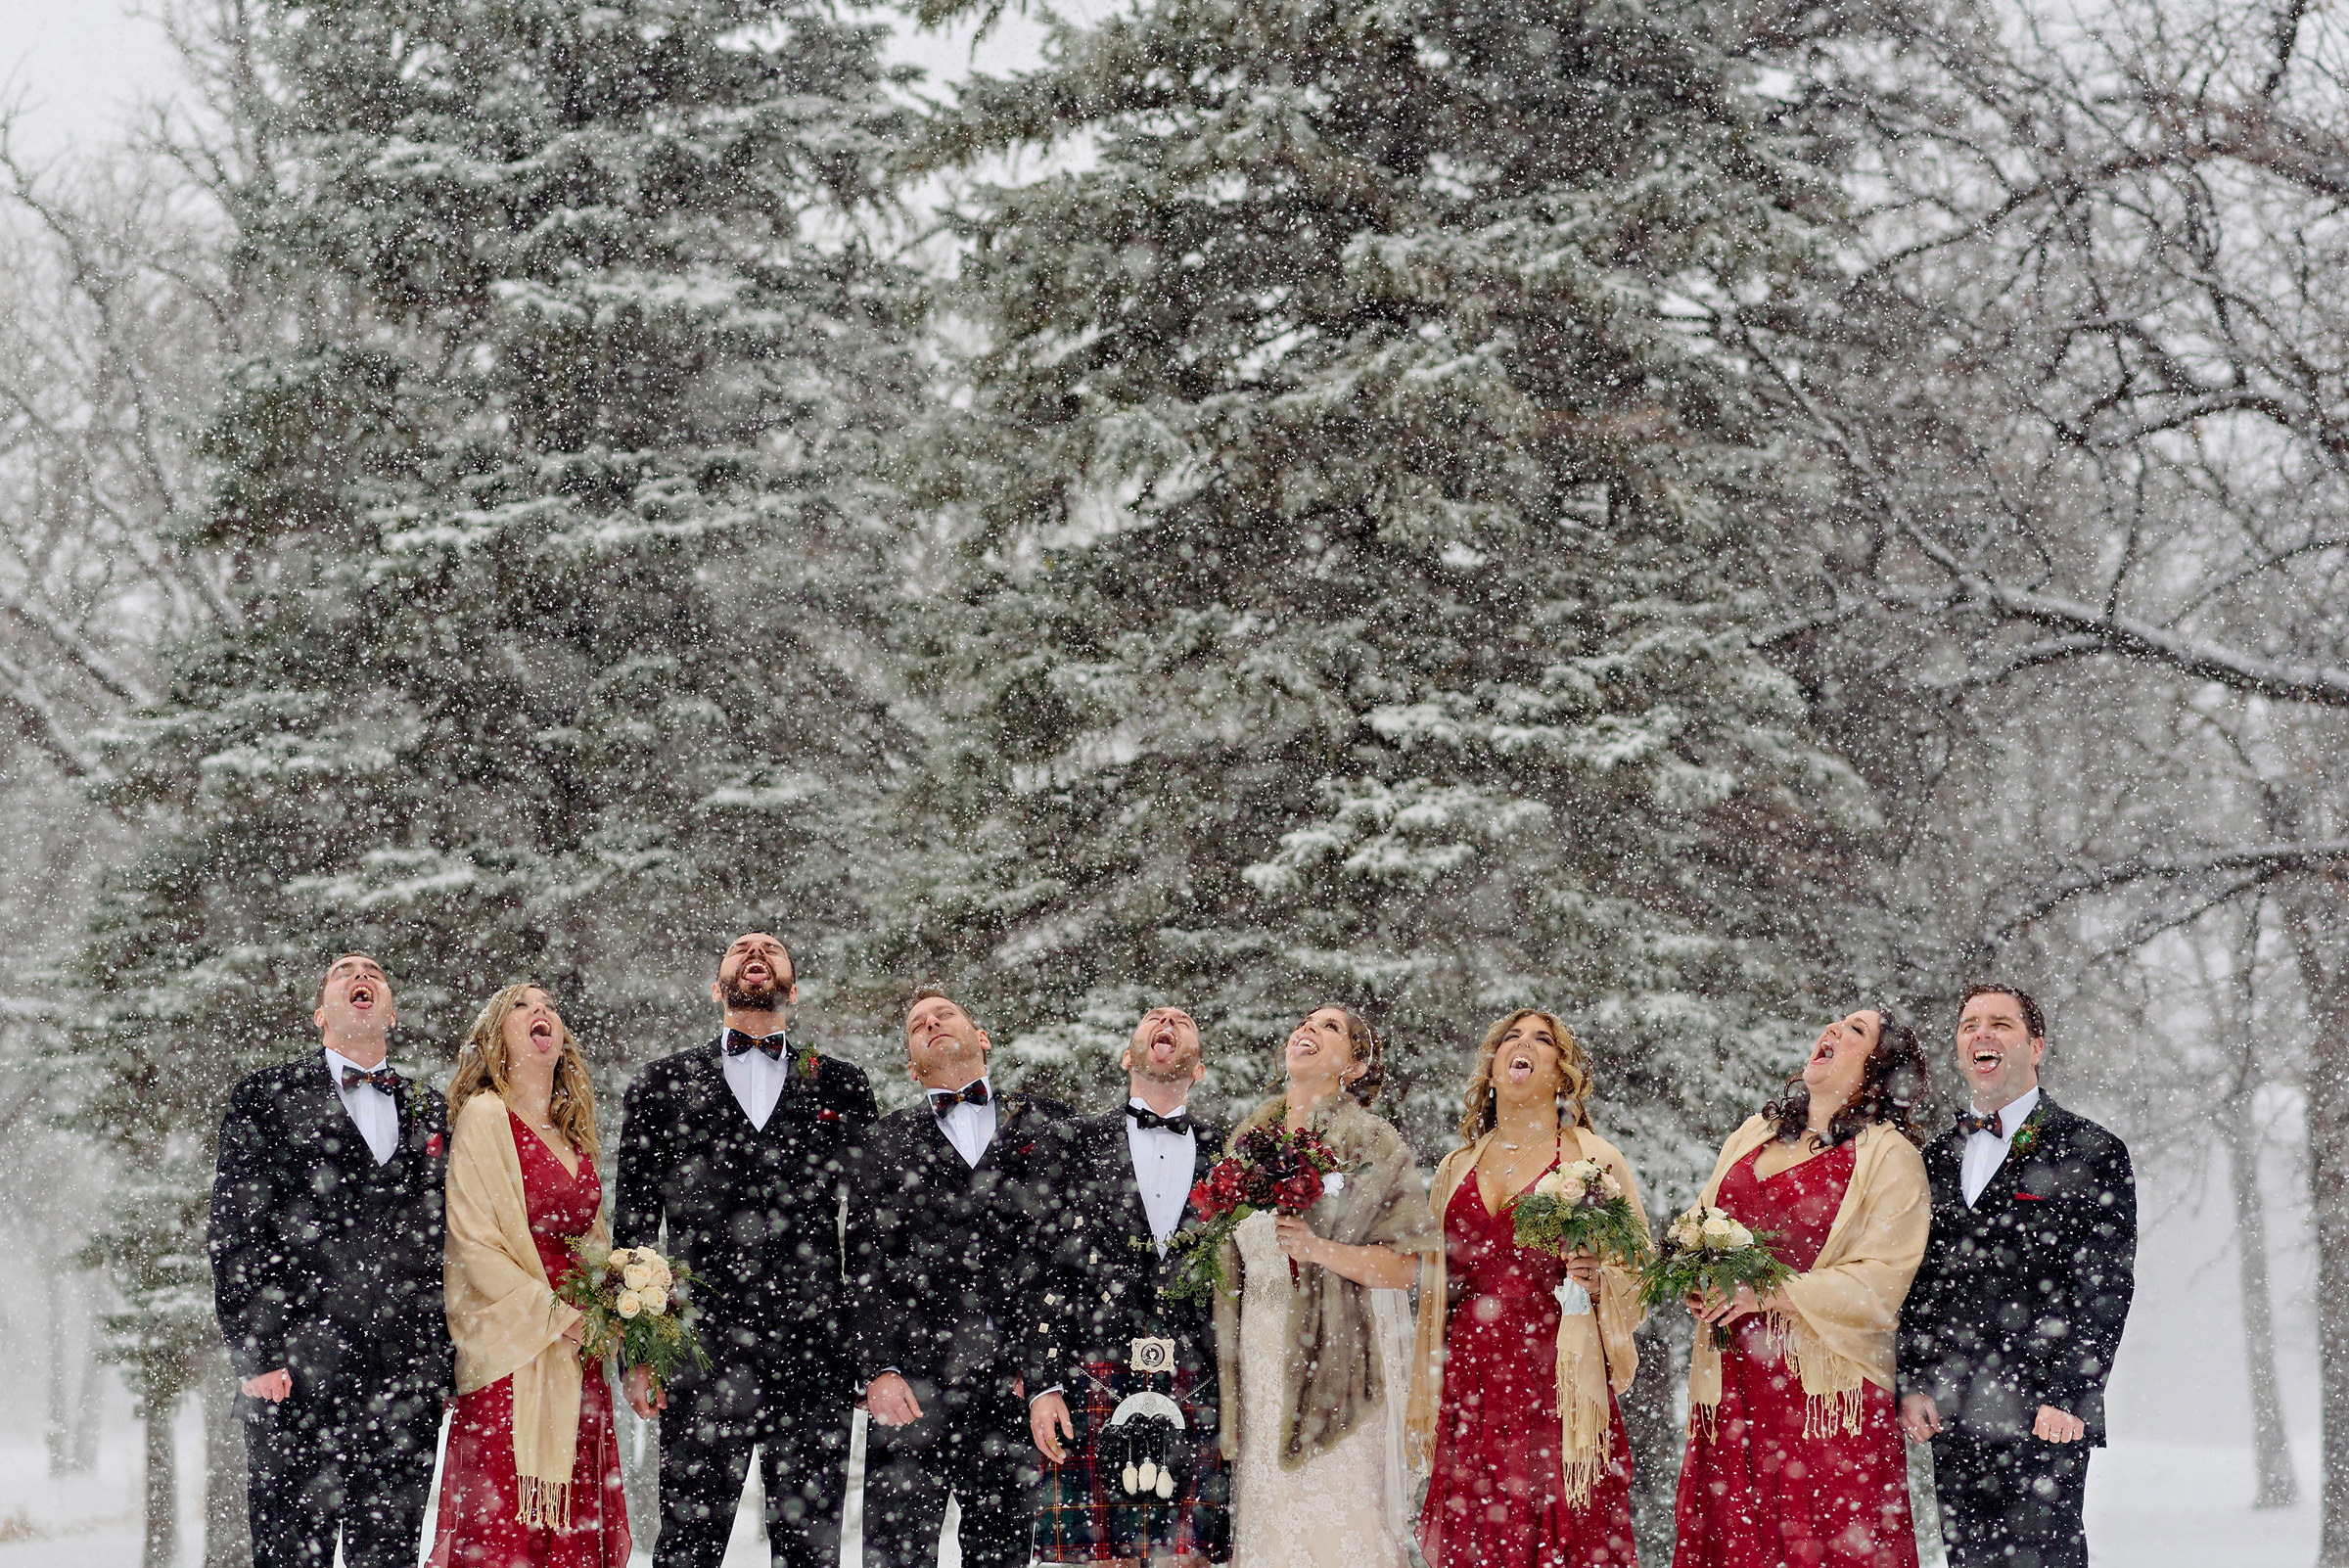 group-portrait-of-bridal-party-putting-their-tounges-out-in-the-snow-moore-photography